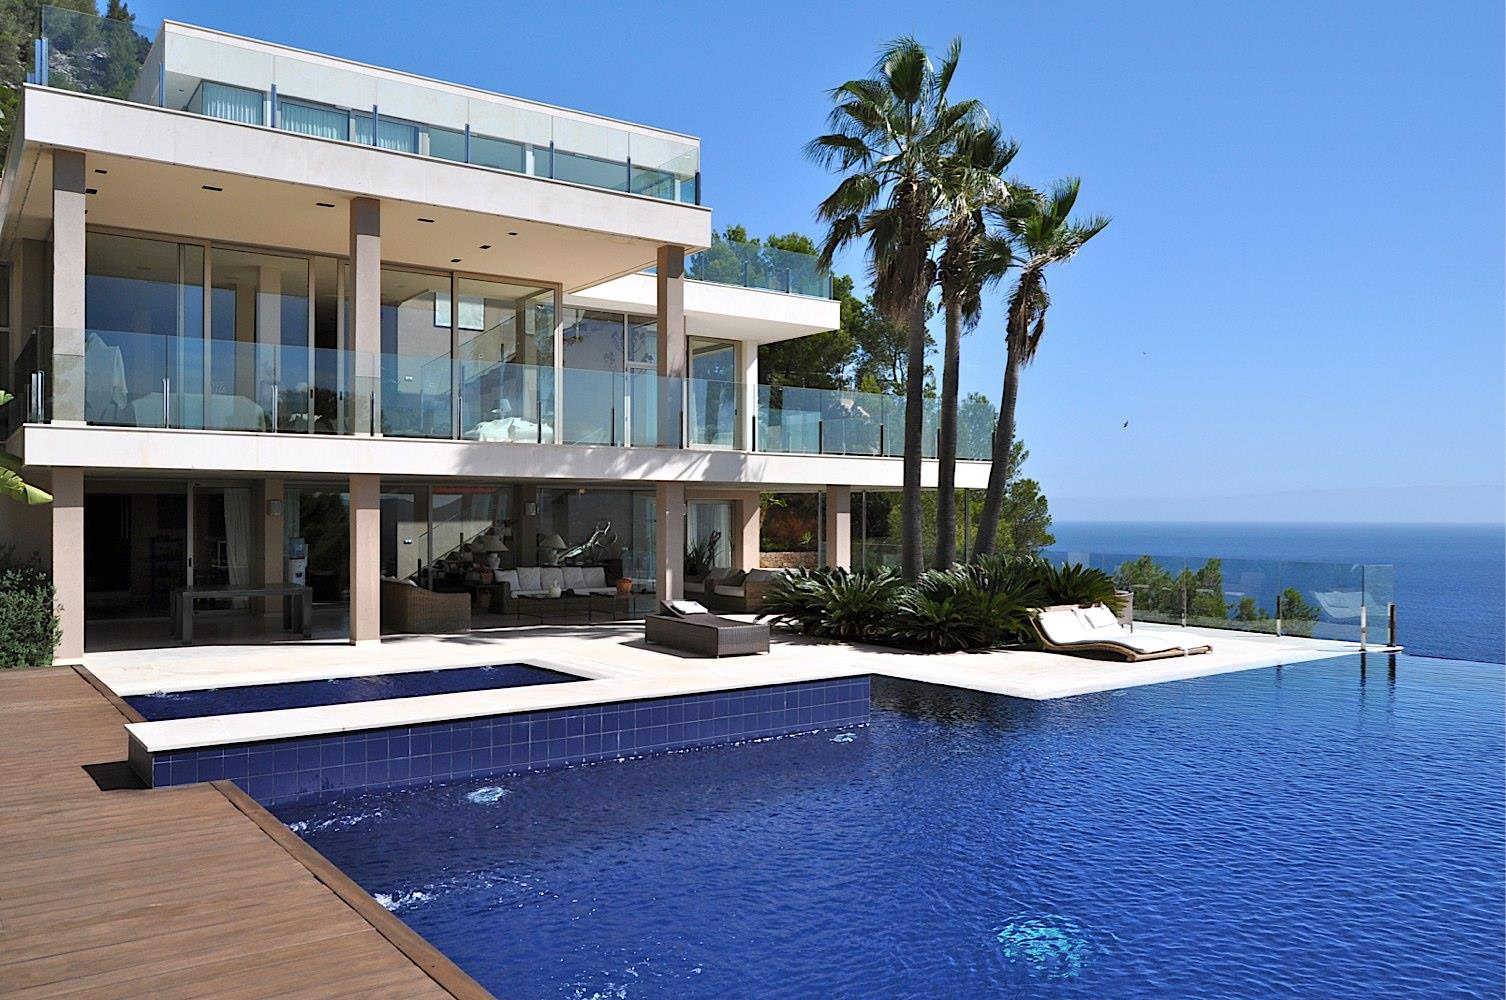 Villas With Pools In Gran Canaria For Sale